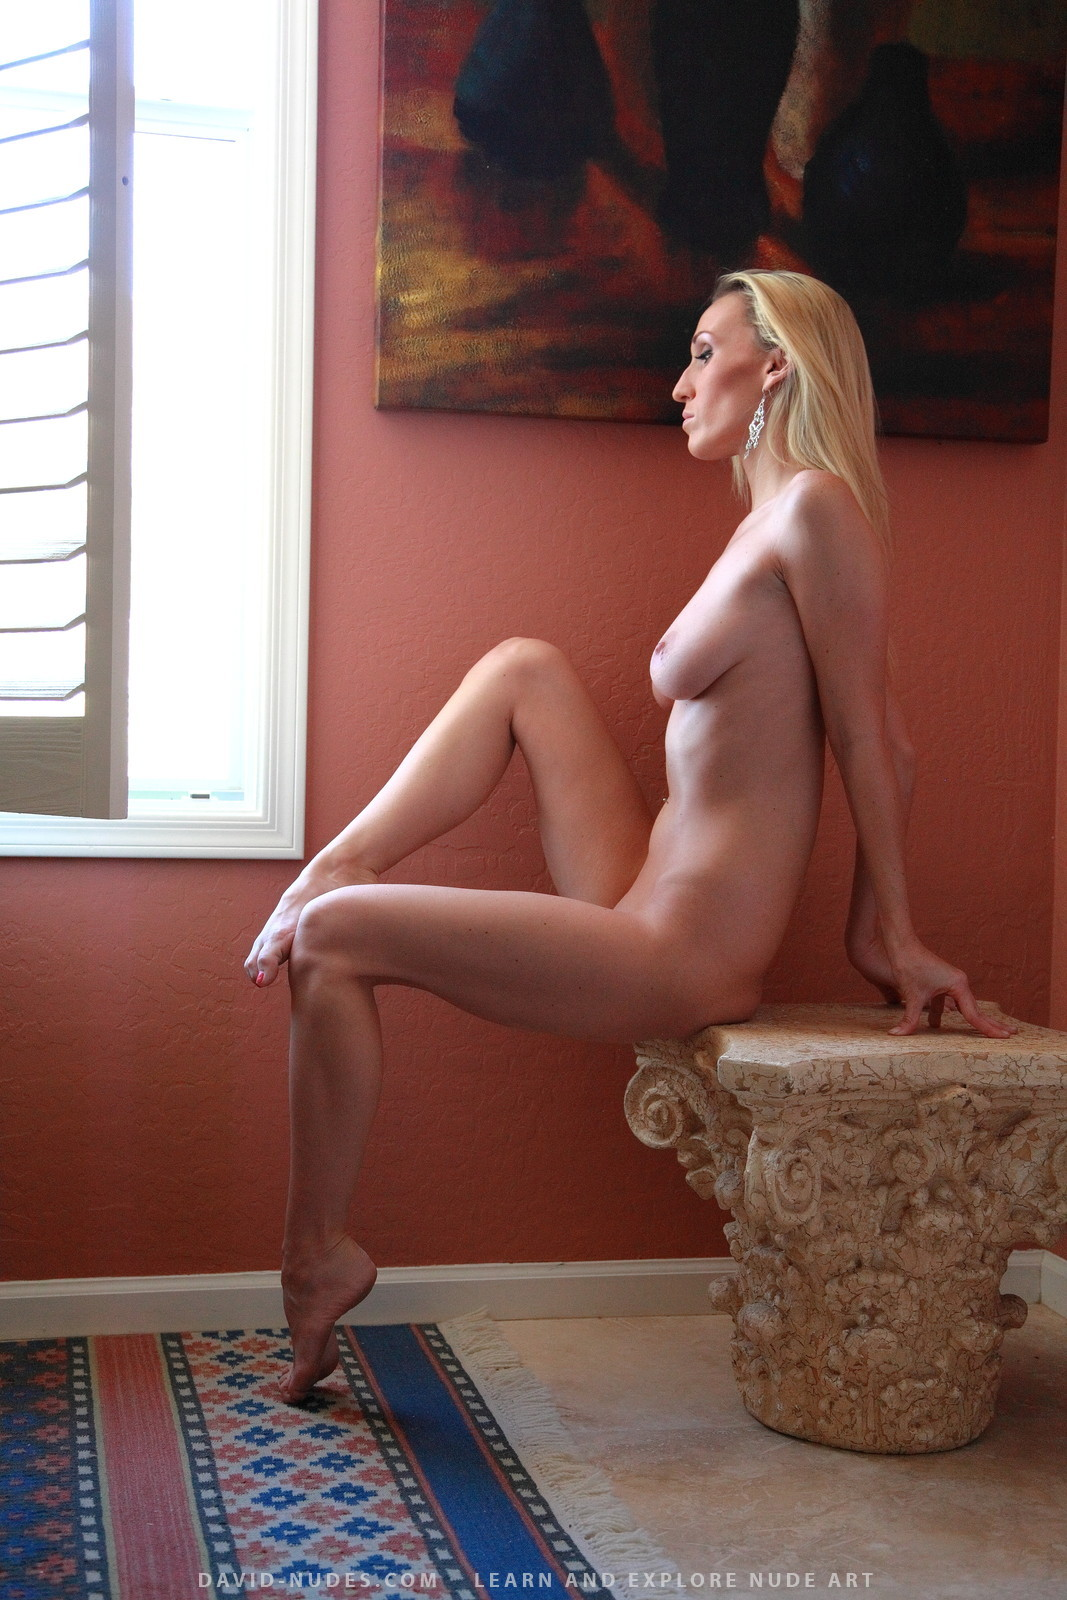 Naked Sunlight On Nude Gallery Png